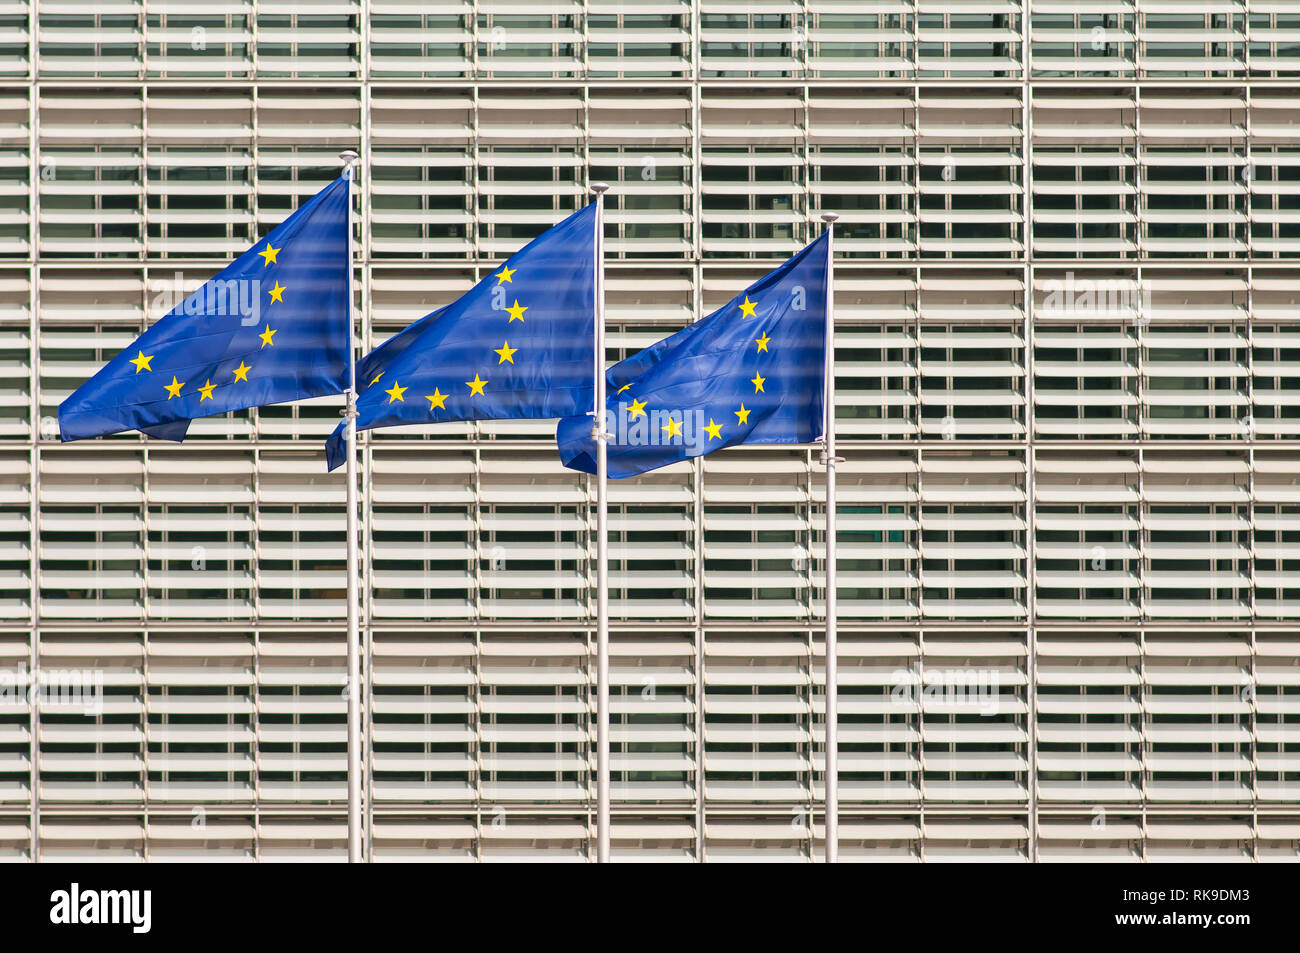 European Union flags in front of European Commission headquarters building, Berlaymont building. Brussels, Belgium - Stock Image